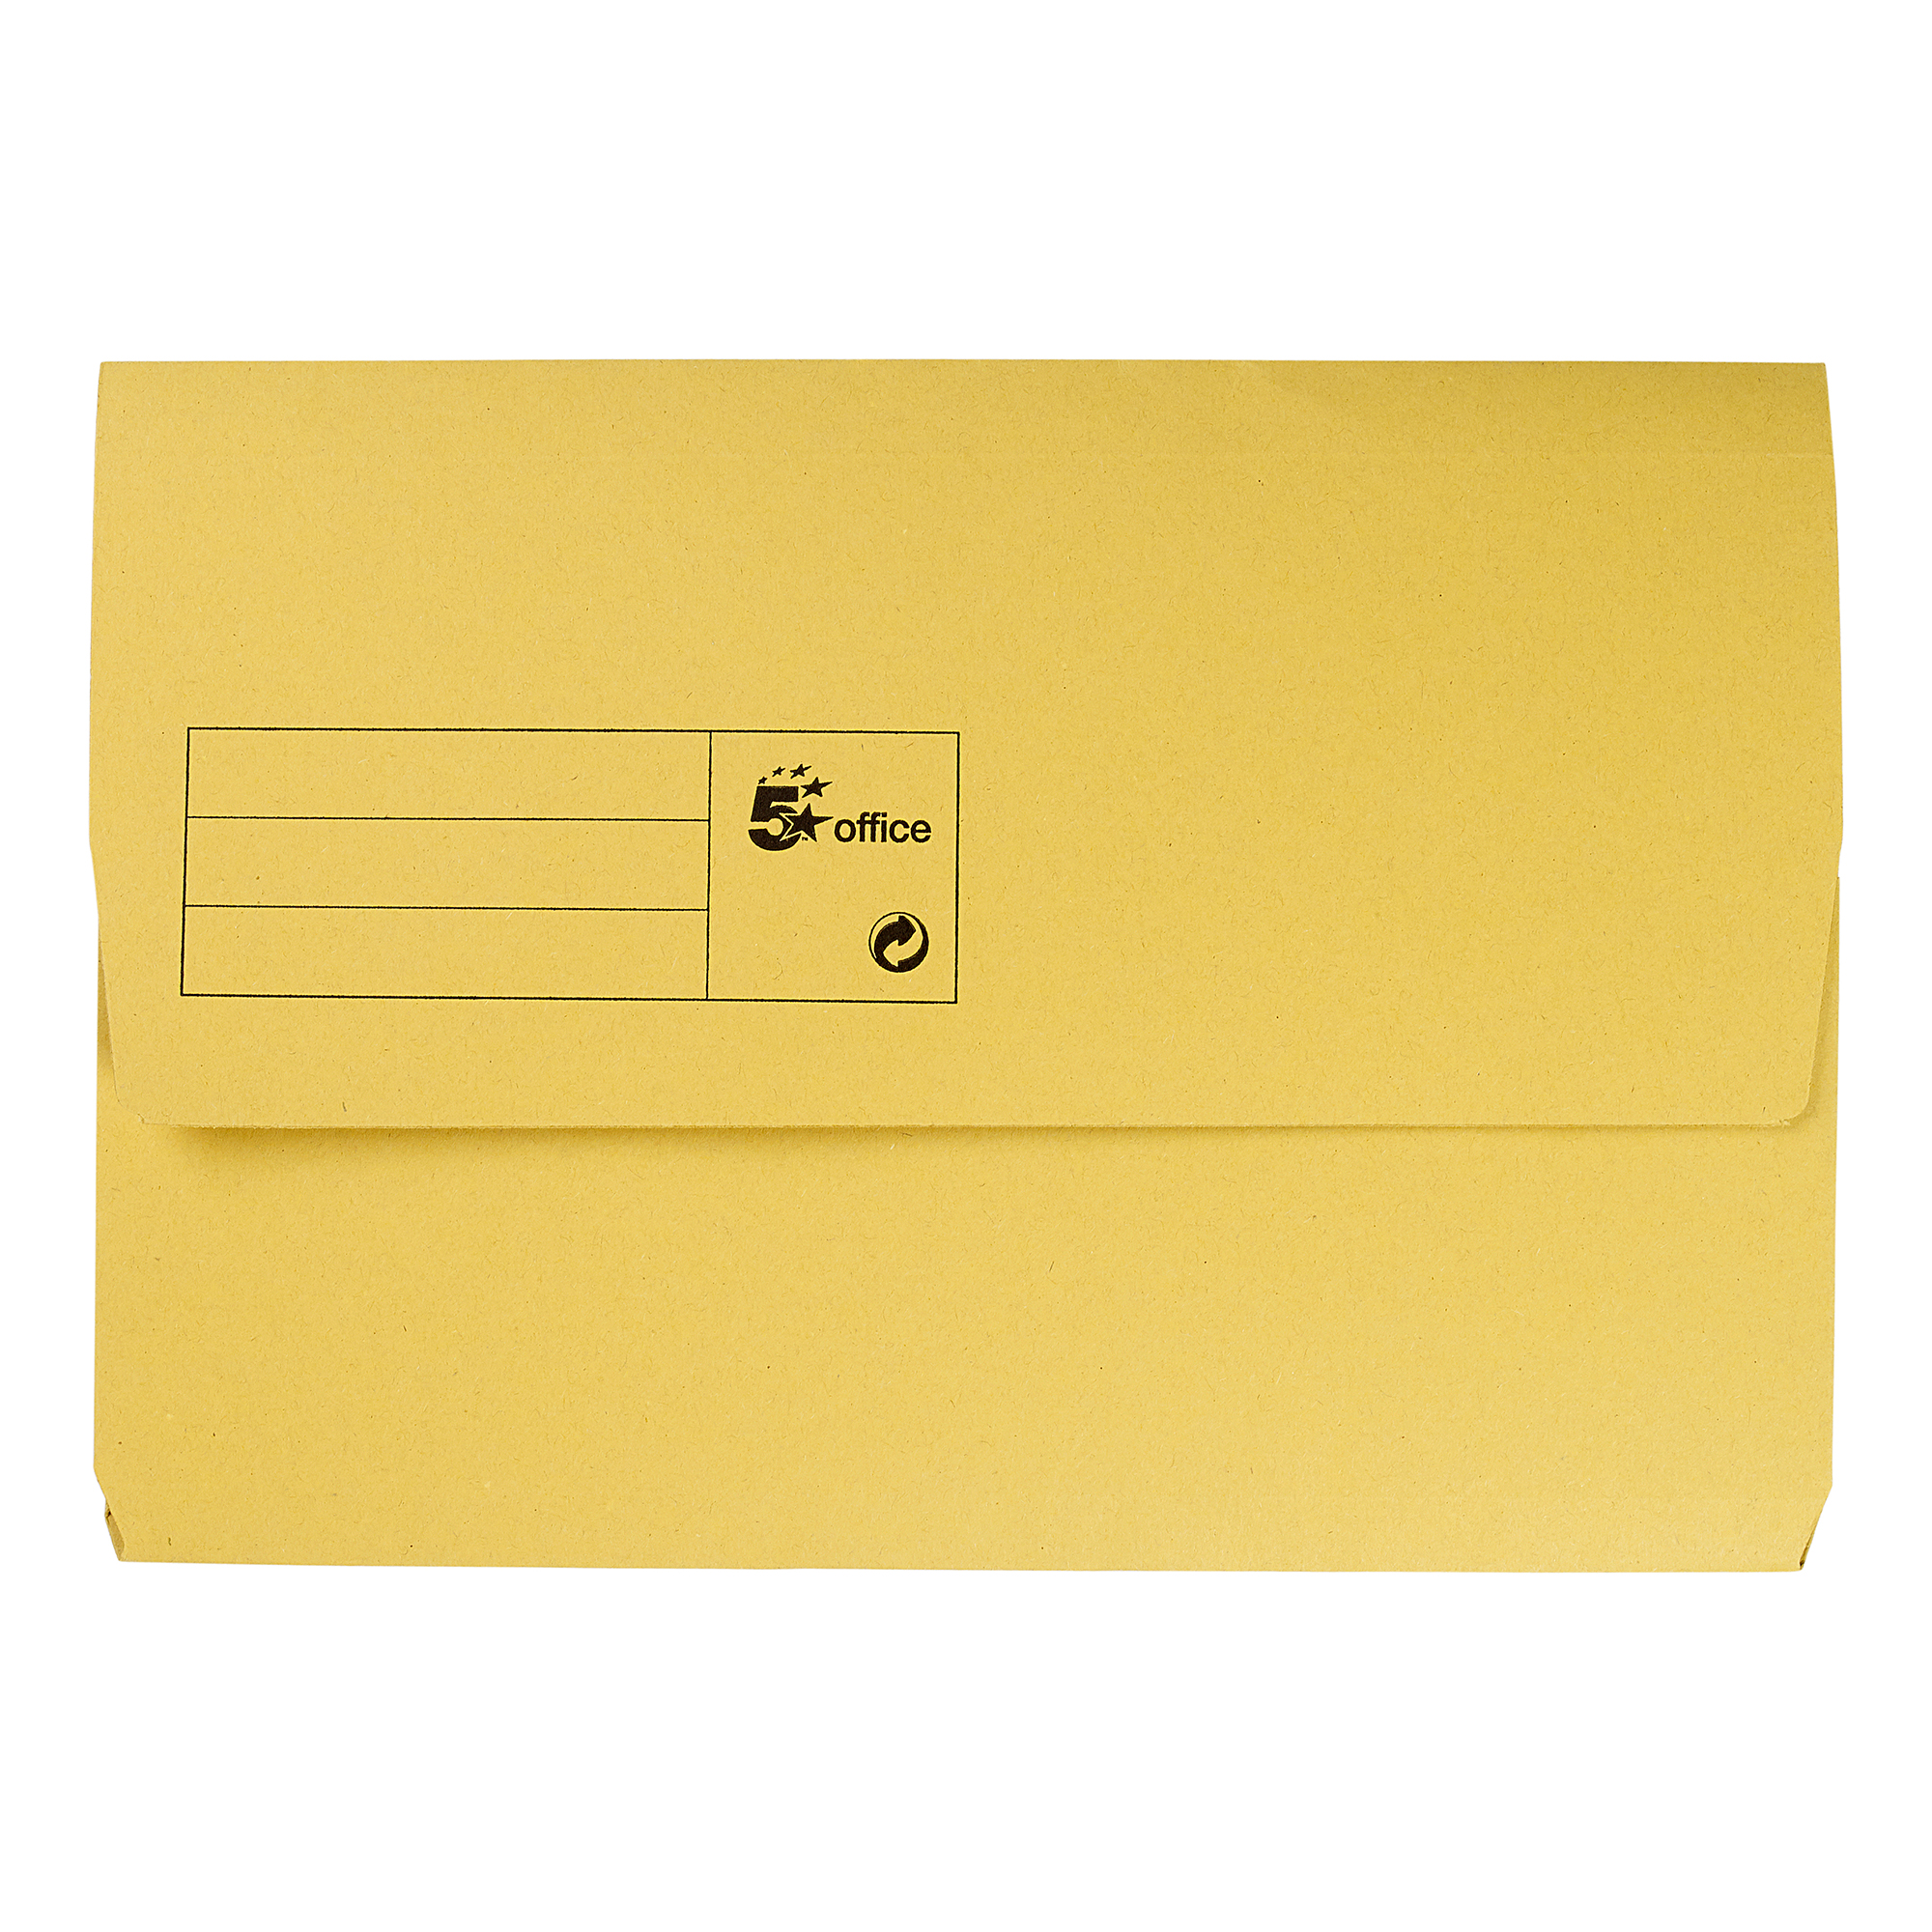 Document Wallets 5 Star Office Document Wallet Half Flap 285gsm Recycled Capacity 32mm Foolscap Yellow Pack 50